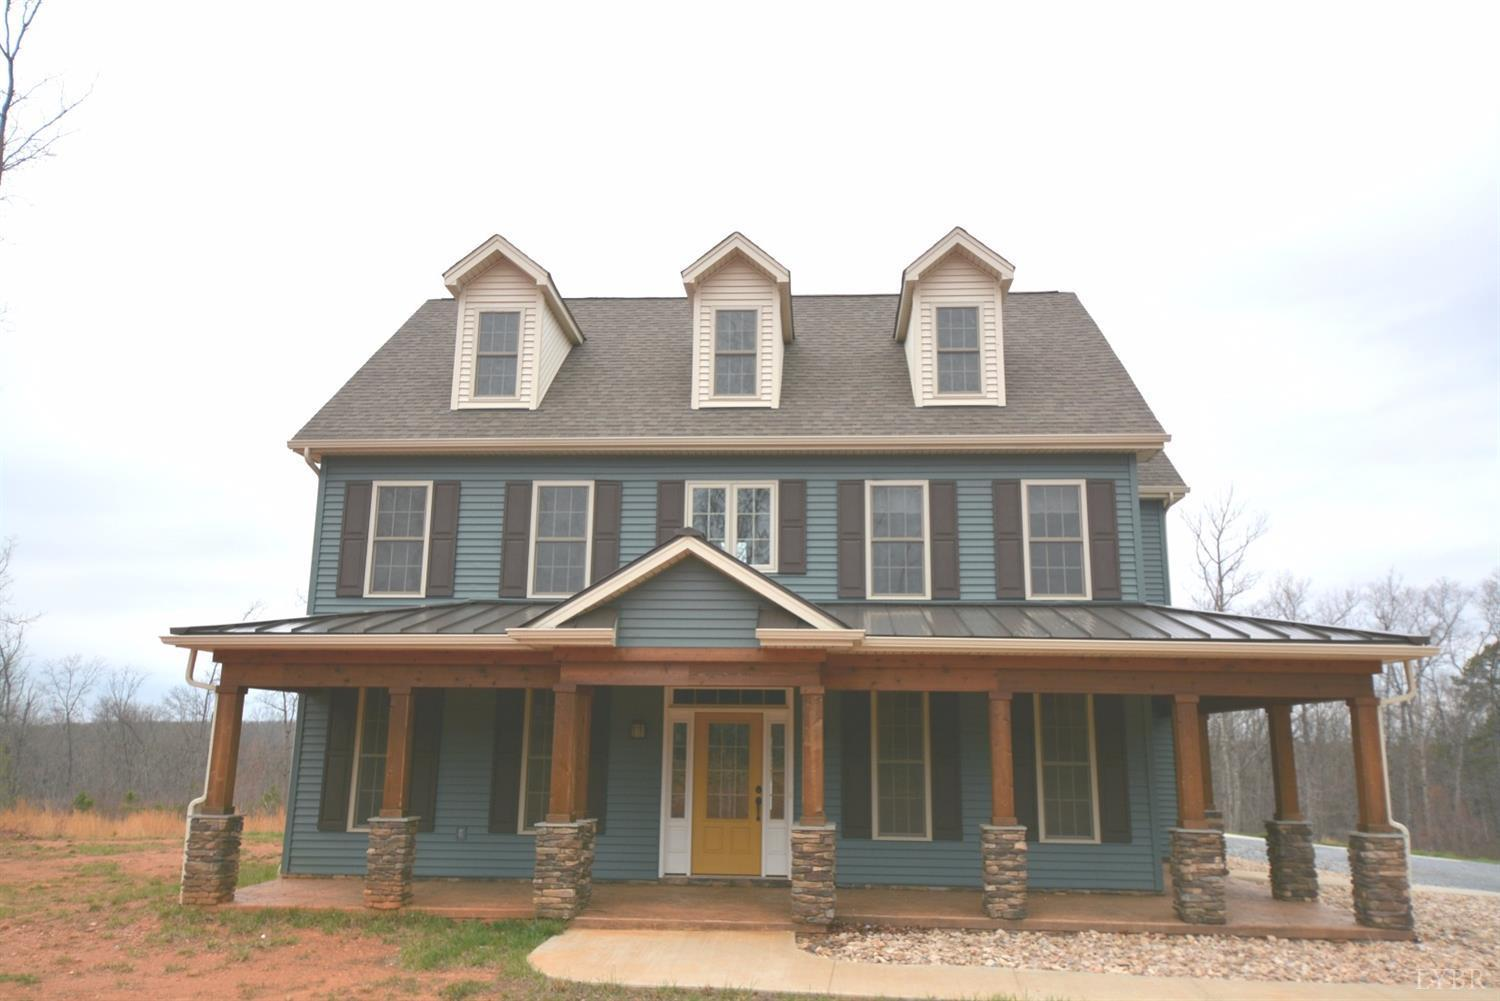 1062 Country Rd, Lynchburg, VA 24504 - Recently Sold | Trulia